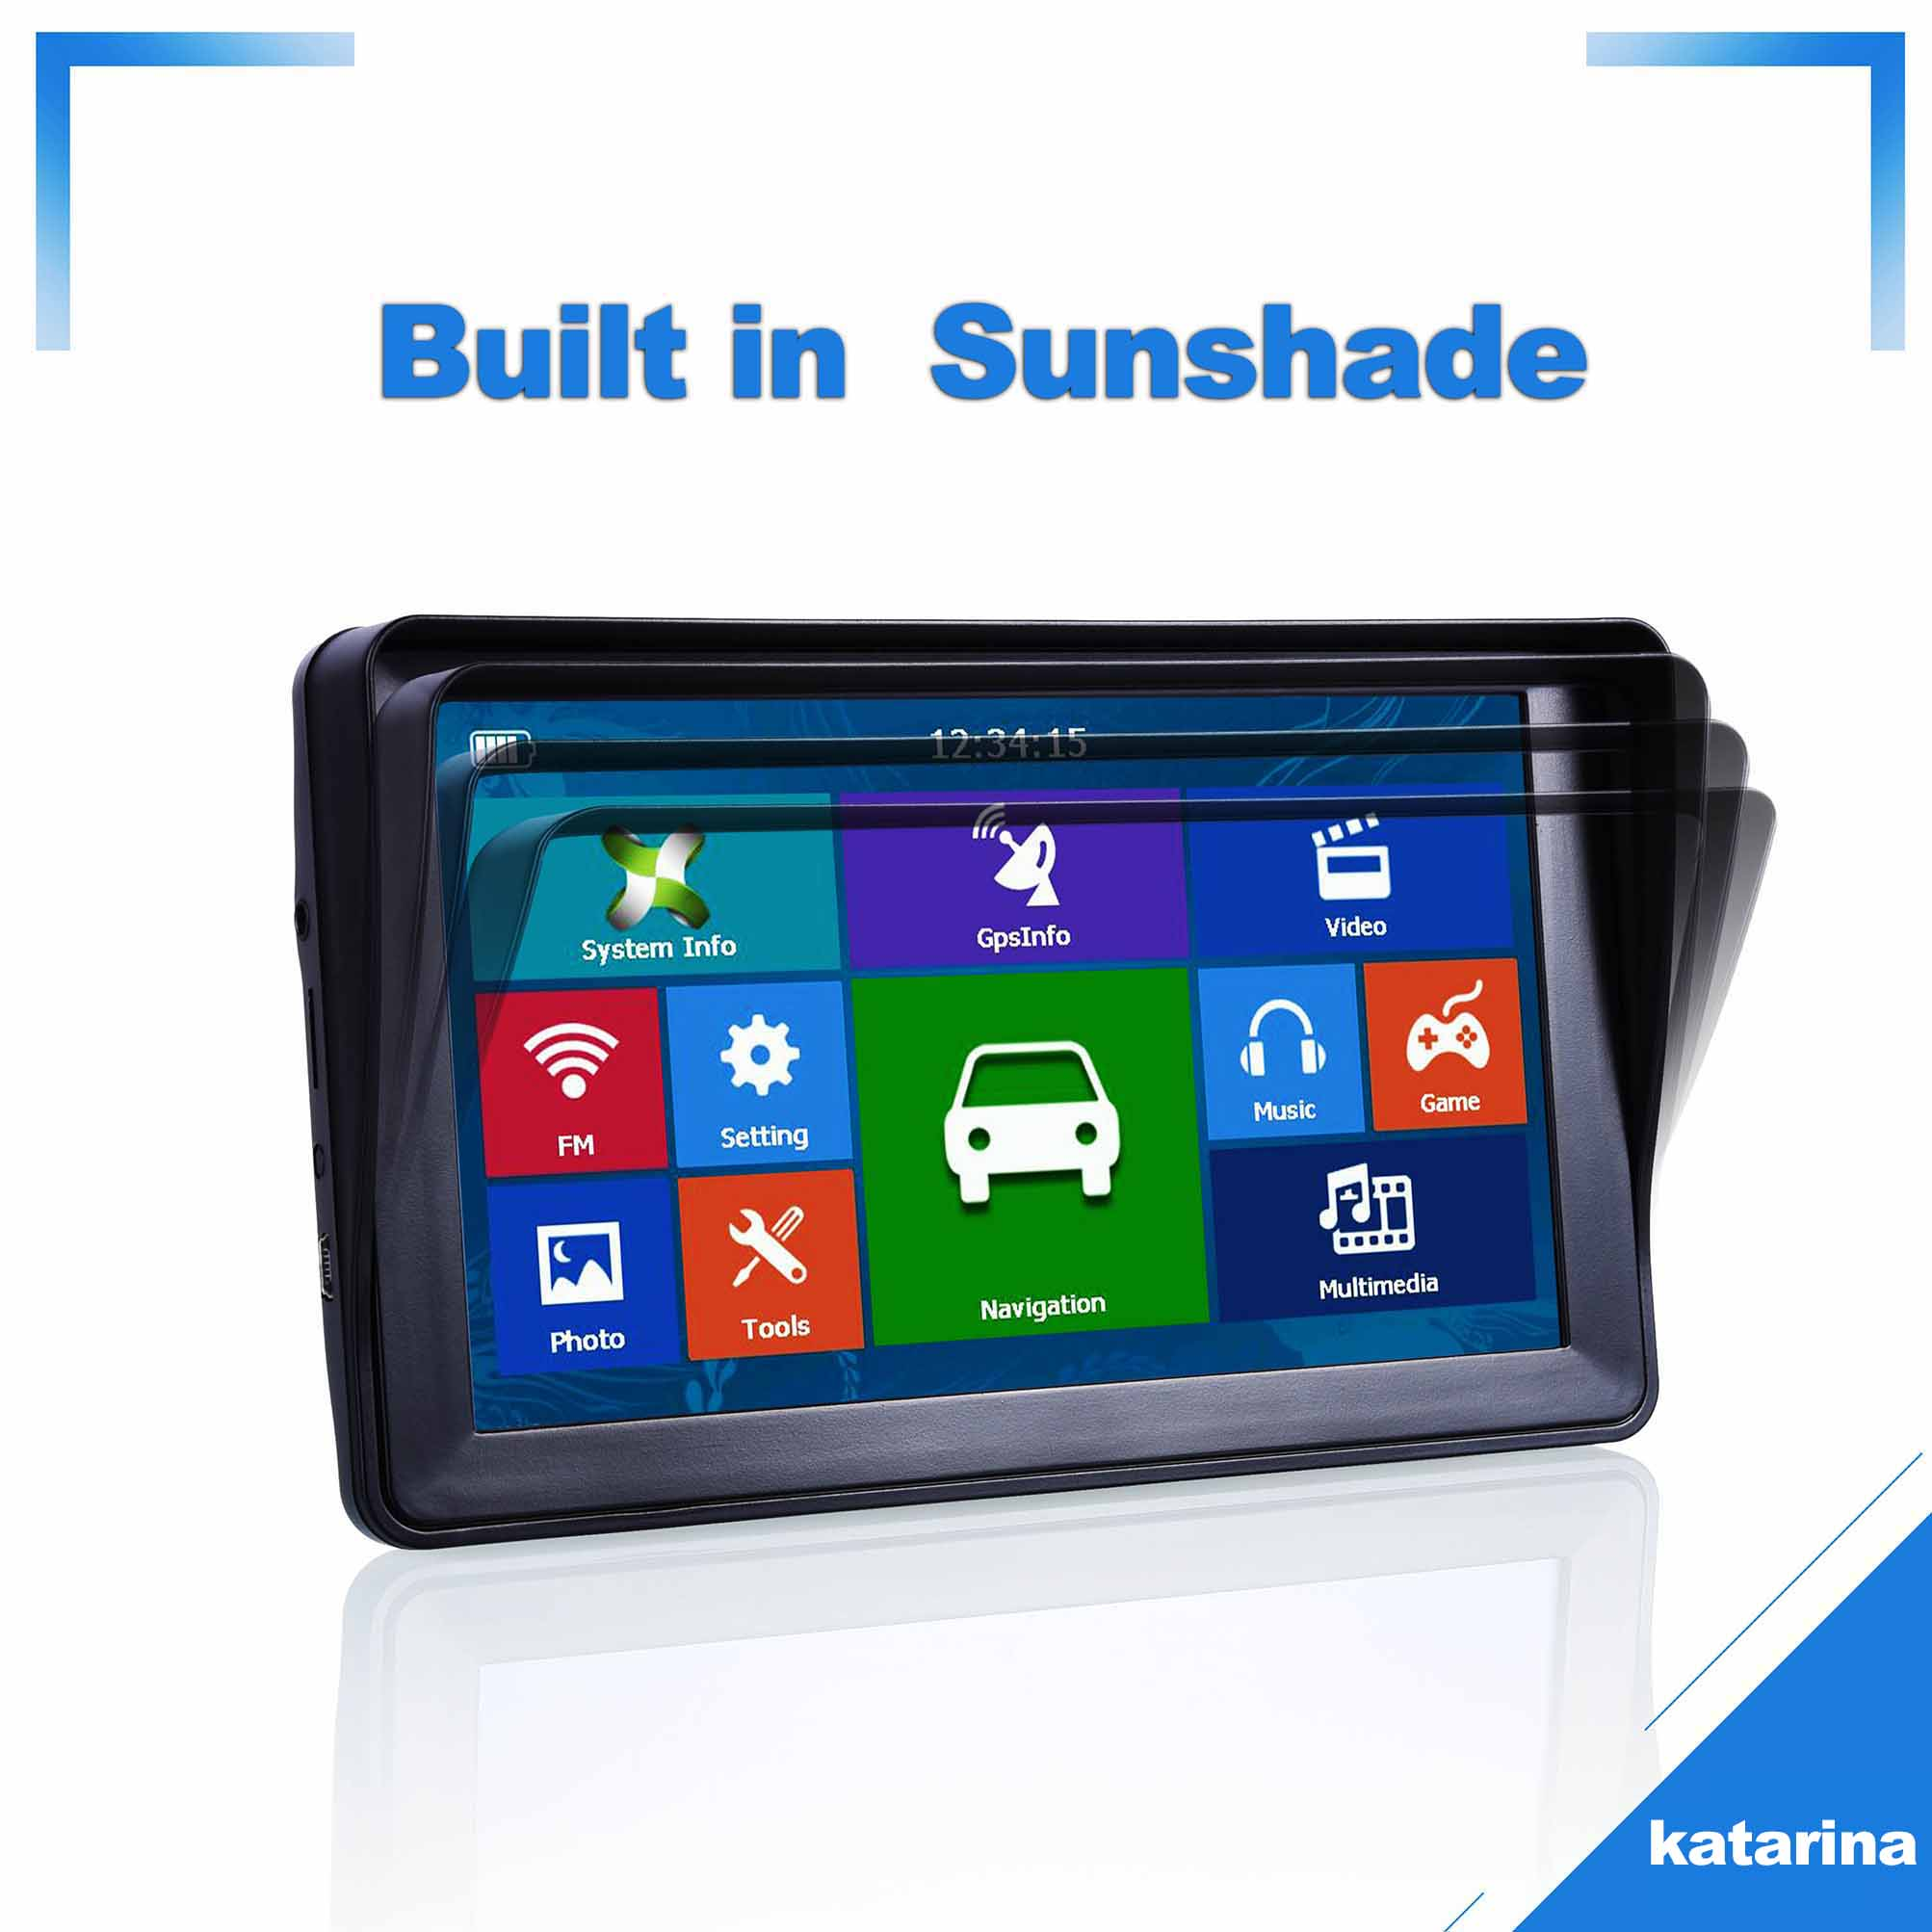 Katarina Car GPS Navigation Truck-Map Bluetooth Europe 256MB 7inch 8G Sunshade Vehicle title=